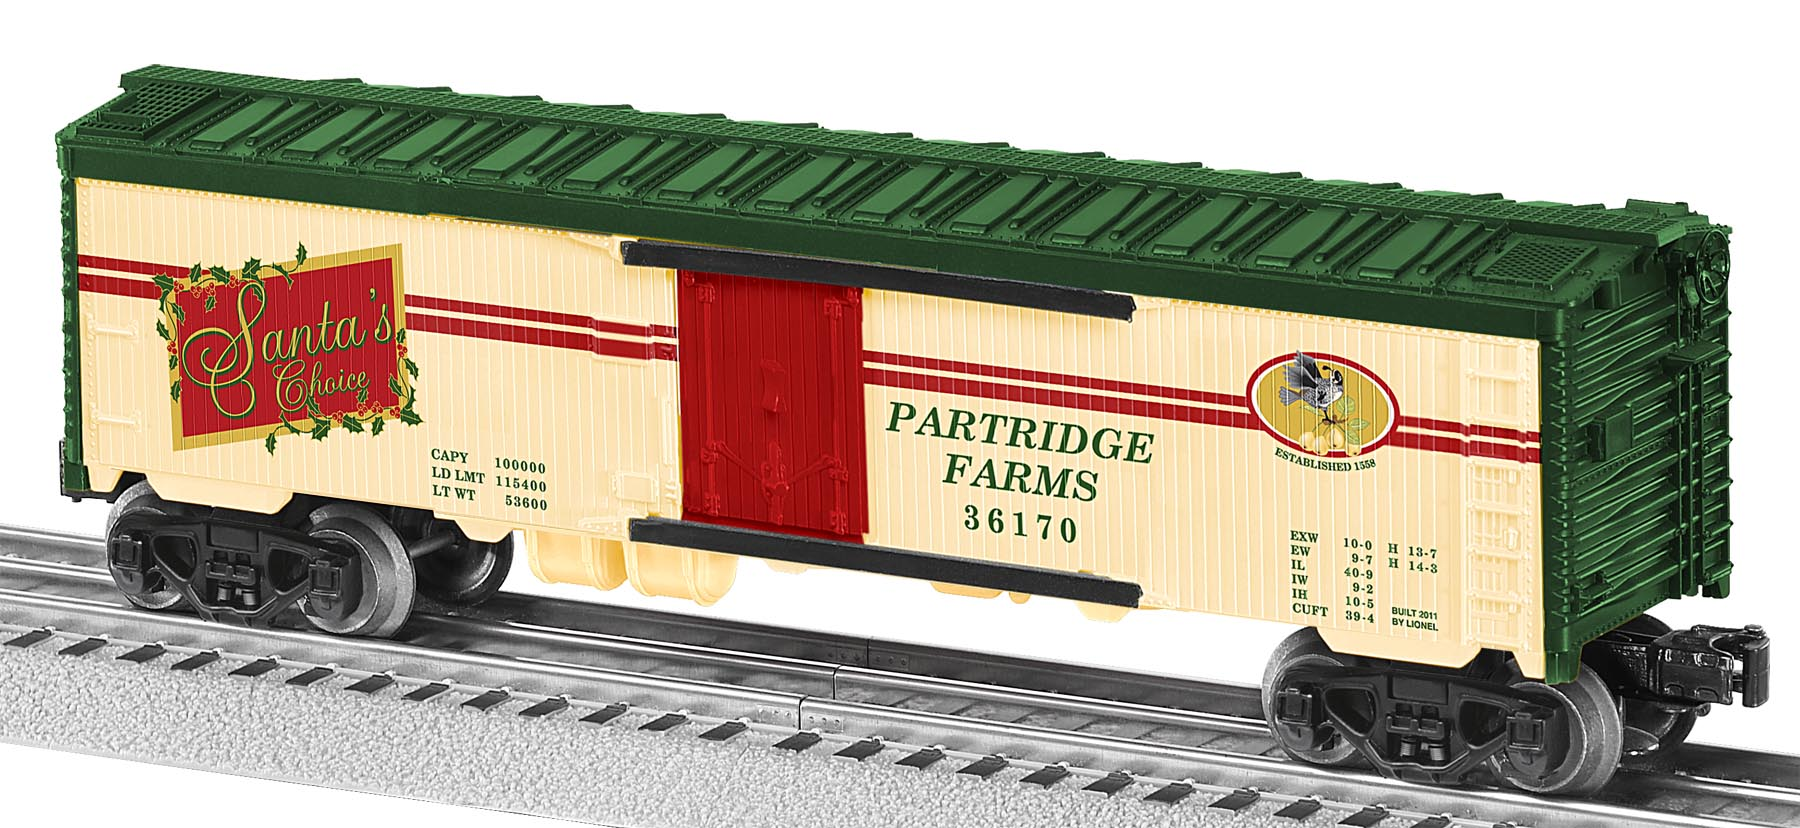 6-36170 PARTRIDGE IN A PEAR TREE WOOD-SIDED REEFER #36170